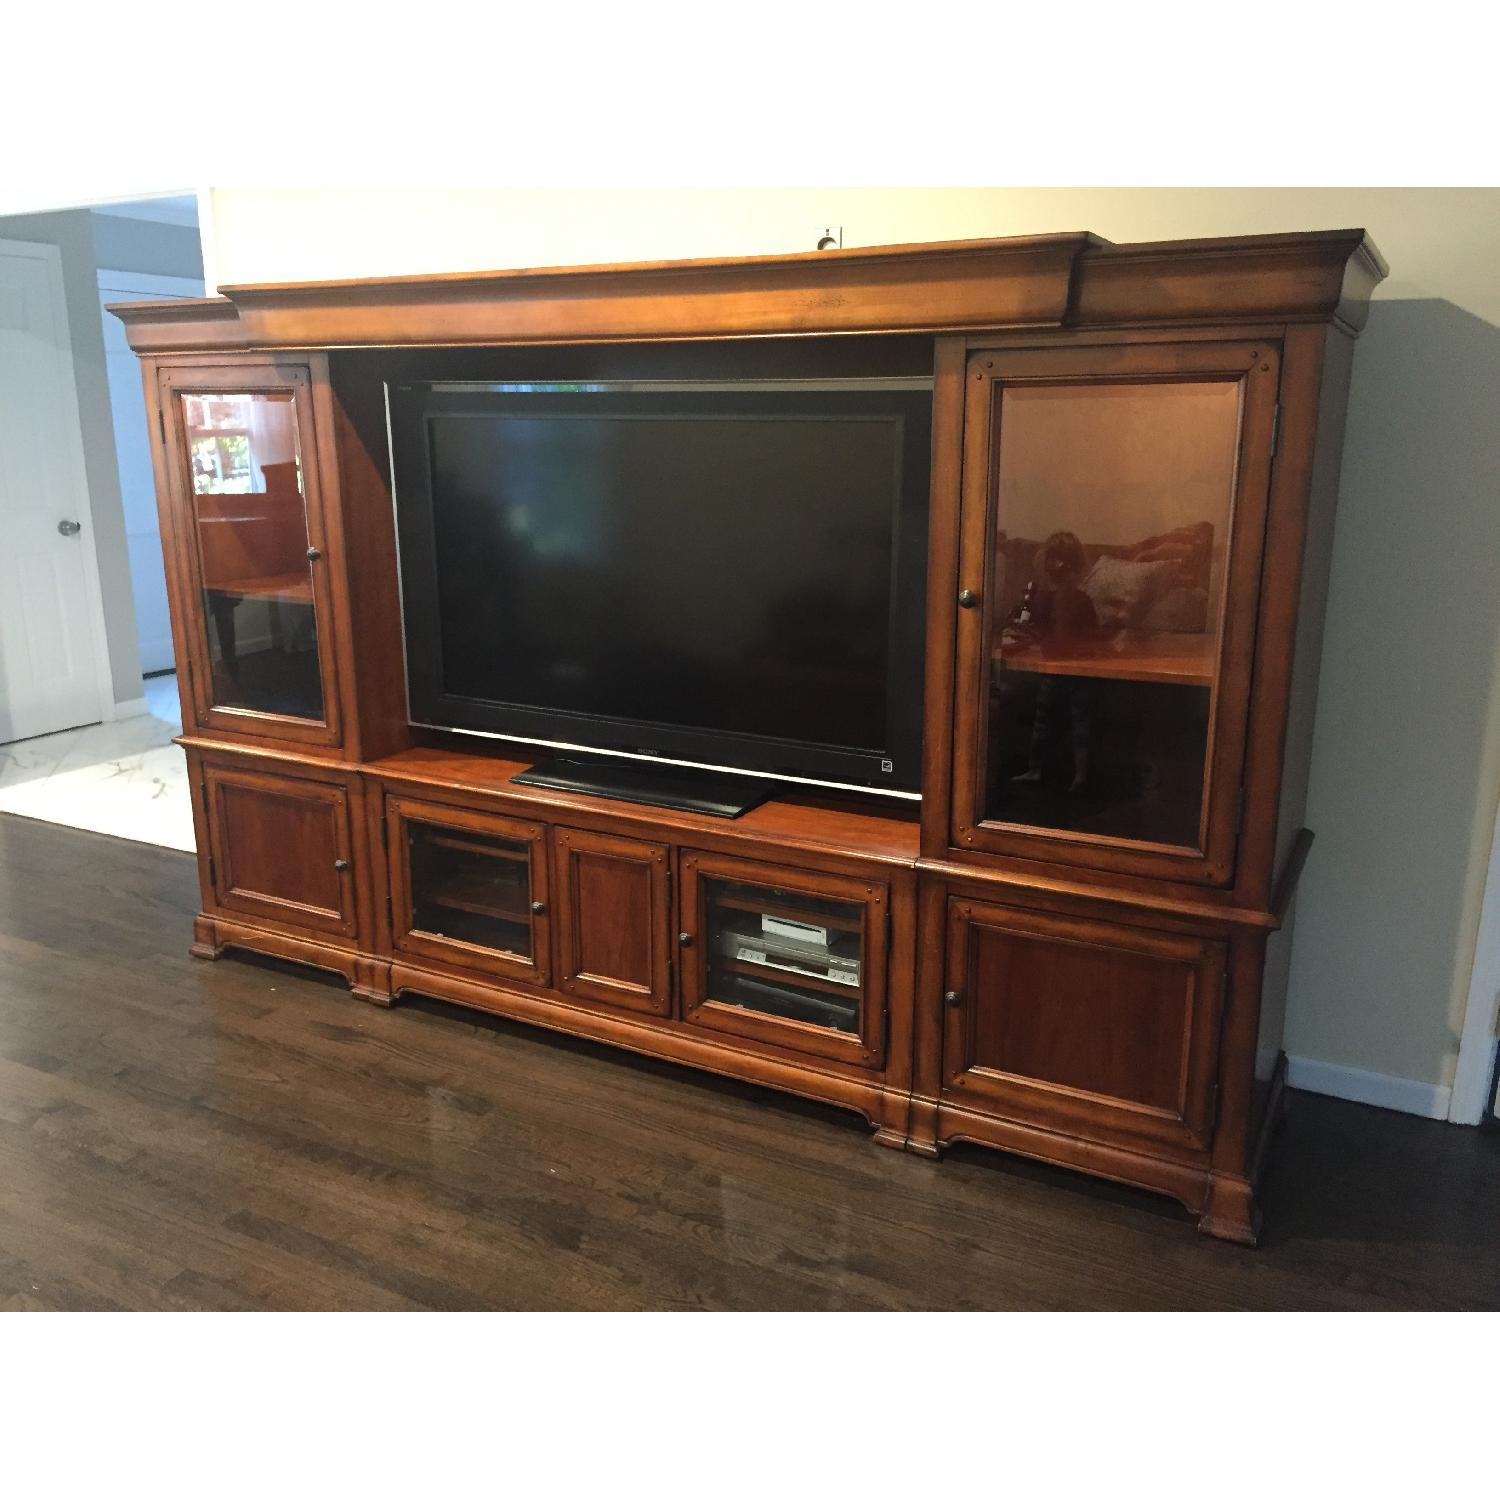 Hooker Furniture Home Entertainment Wall Unit - image-4